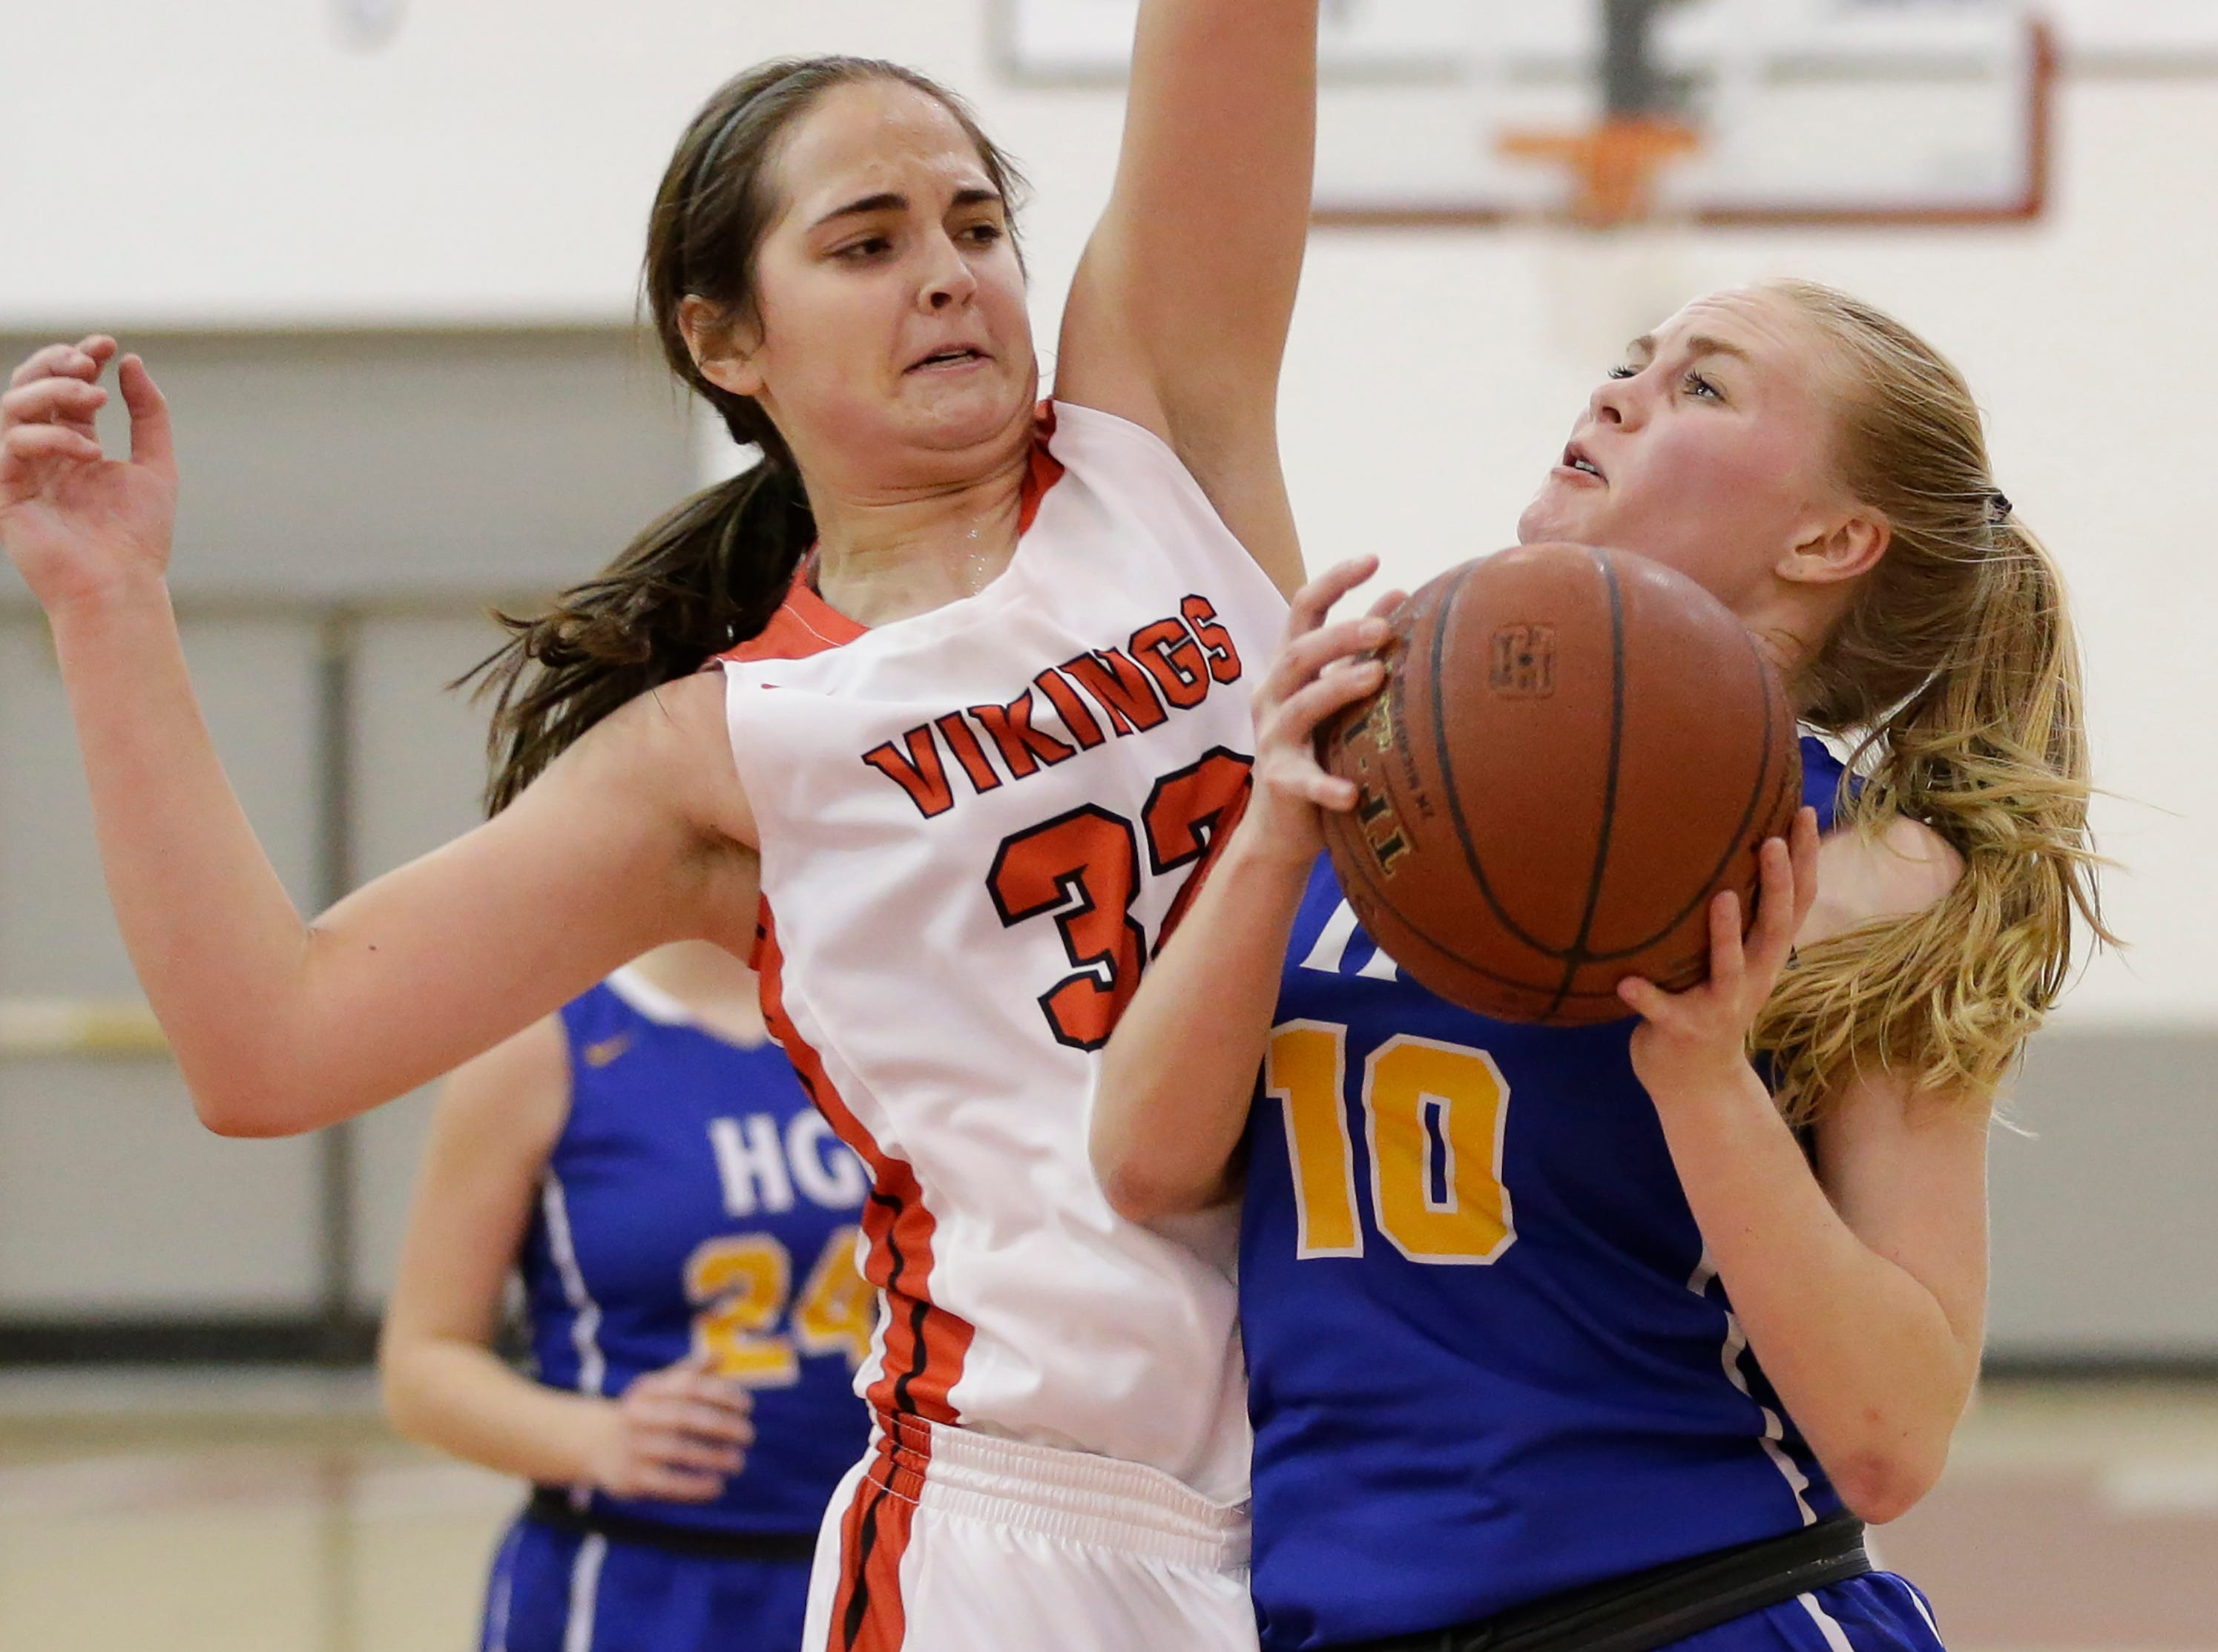 Howards Grove's Leah Parnitzke (10) looks to shoots against Valders in a non-conference game at Valders High School Saturday, January 19, 2019, in Valders, Wis. Joshua Clark/USA TODAY NETWORK-Wisconsin